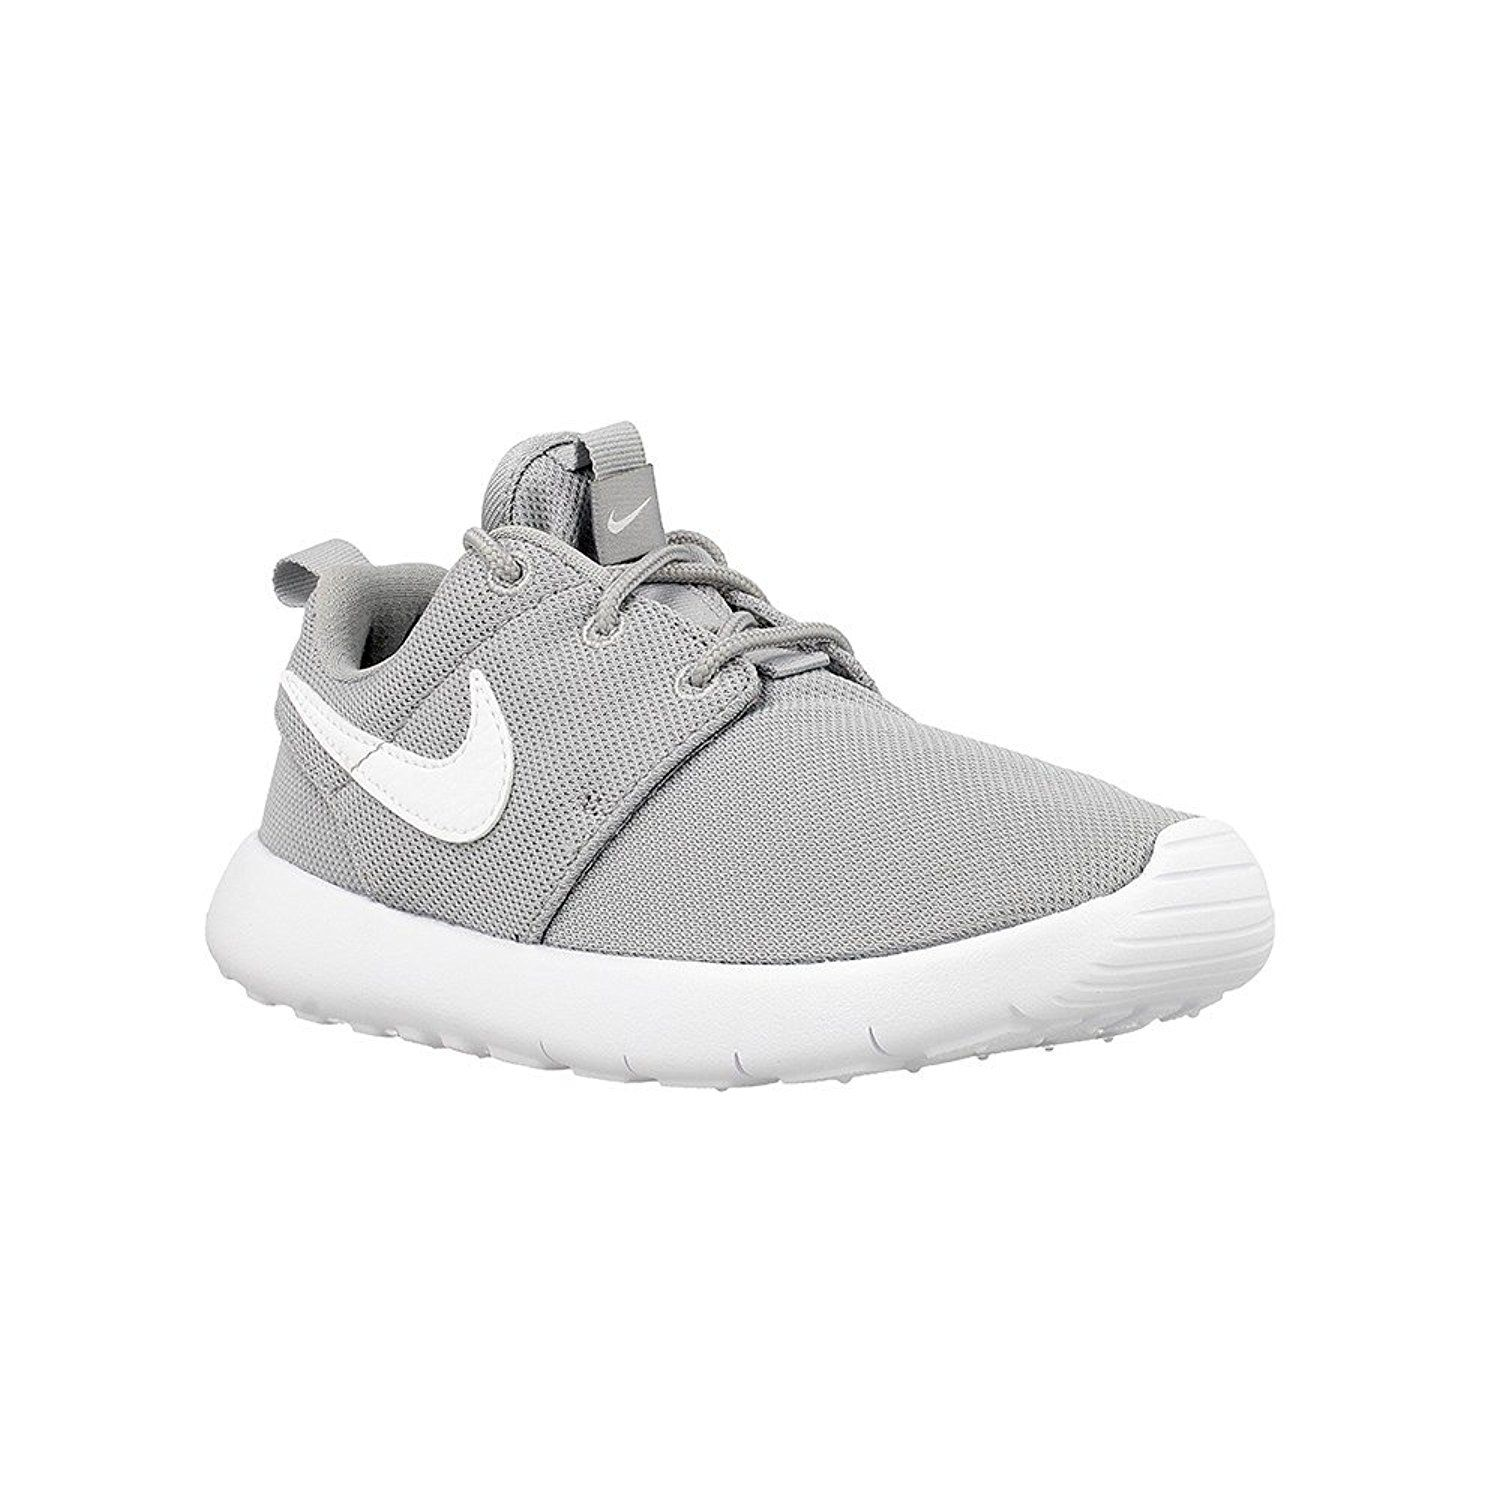 size 40 b6476 41565 ... store nike roshe one ps 749427033 couleur blanc gris pointure  chaussures nike partner link ff2a6 946b3